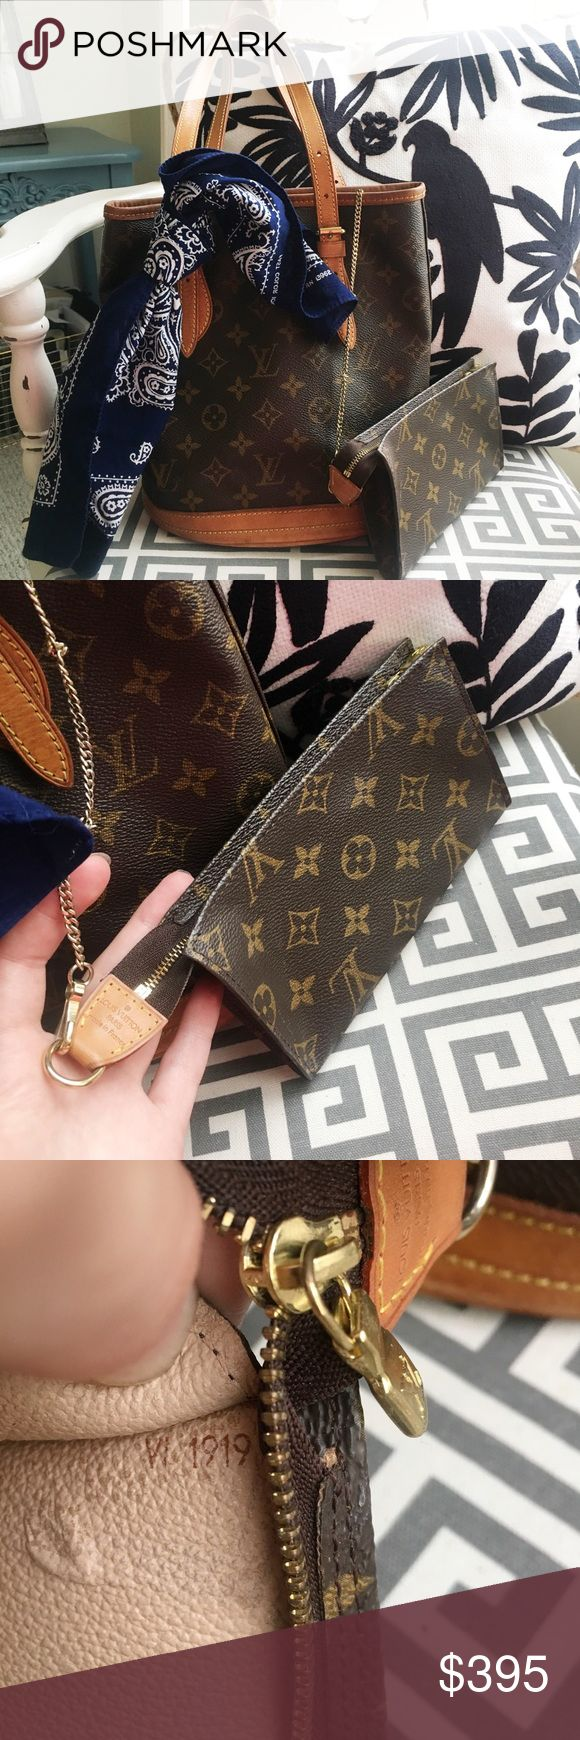 💯% AUTHENTIC LOUIS VUITTON 💯 authentic Louis Vuitton PM bucket bag and pouch. I have removed the sticky lining so all that's left is the smooth, velvety cloth. Great condition, no cracks or tears. Vachetta has some marks as seen. Monogram leather in perfect condition. The pouch still has the lining but it's not that sticky, that's why I didn't remove it. But it has a few spots where it's wanting to peel. Offers welcome Louis Vuitton Bags Shoulder Bags